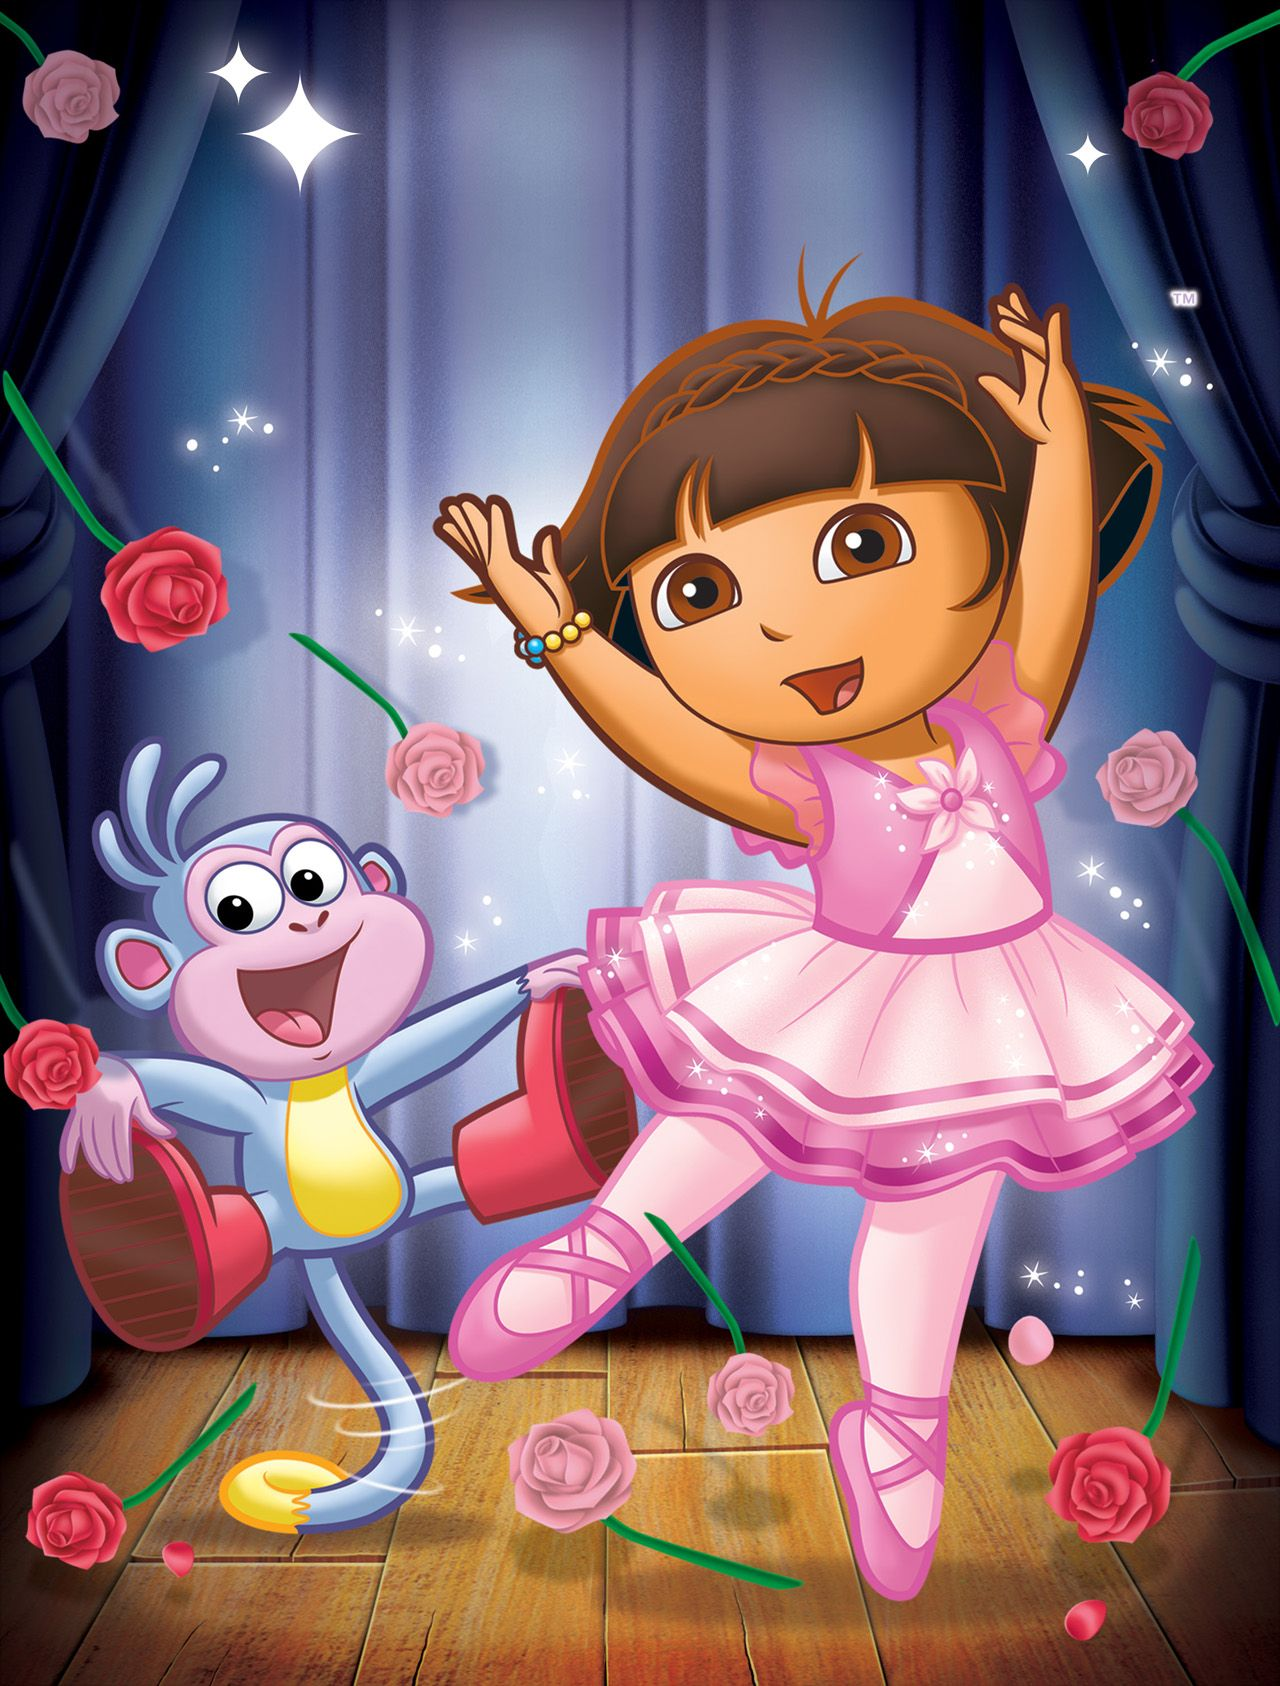 Dora the explorer rqpng wallpaper x hd wallpapers pinterest dora the explorer rqpng wallpaper x voltagebd Image collections